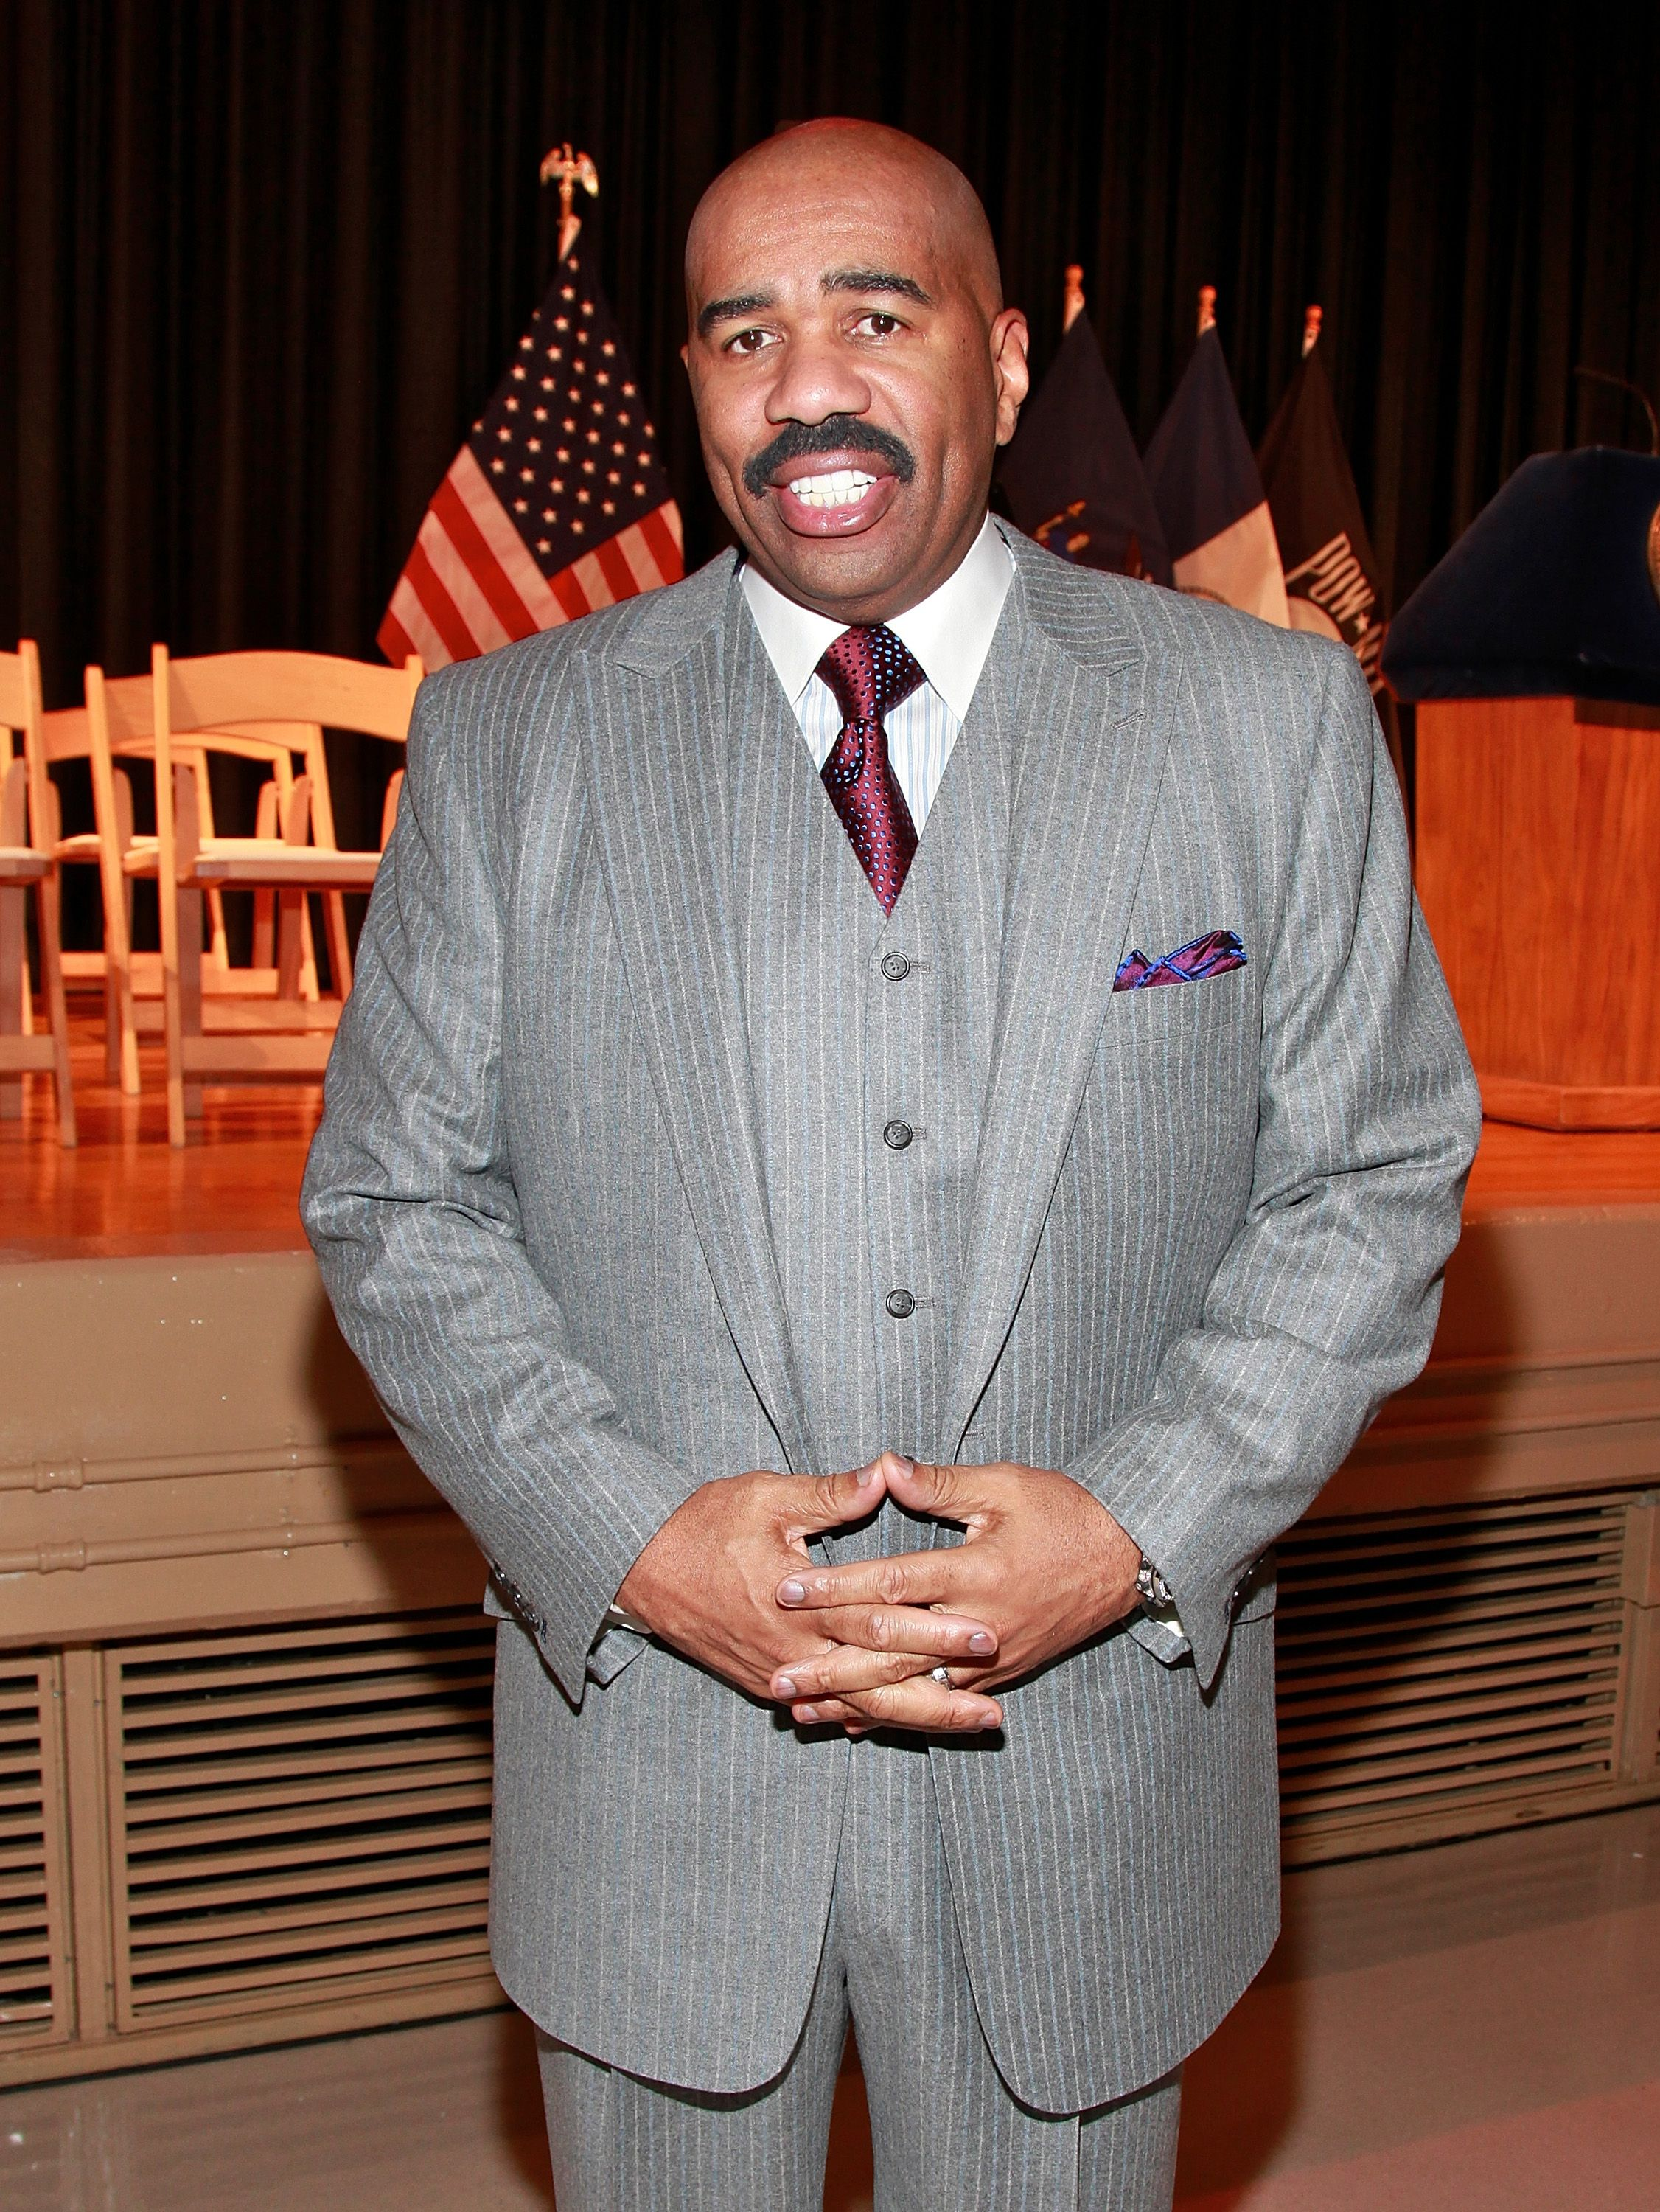 Steve Harvey during the NYC Service Mentor It Forward Program breakfast reception in honor of Martin Luther King Jr. Day at Martin Luther King High School on January 17, 2011 in New York City.   Source: Getty Images